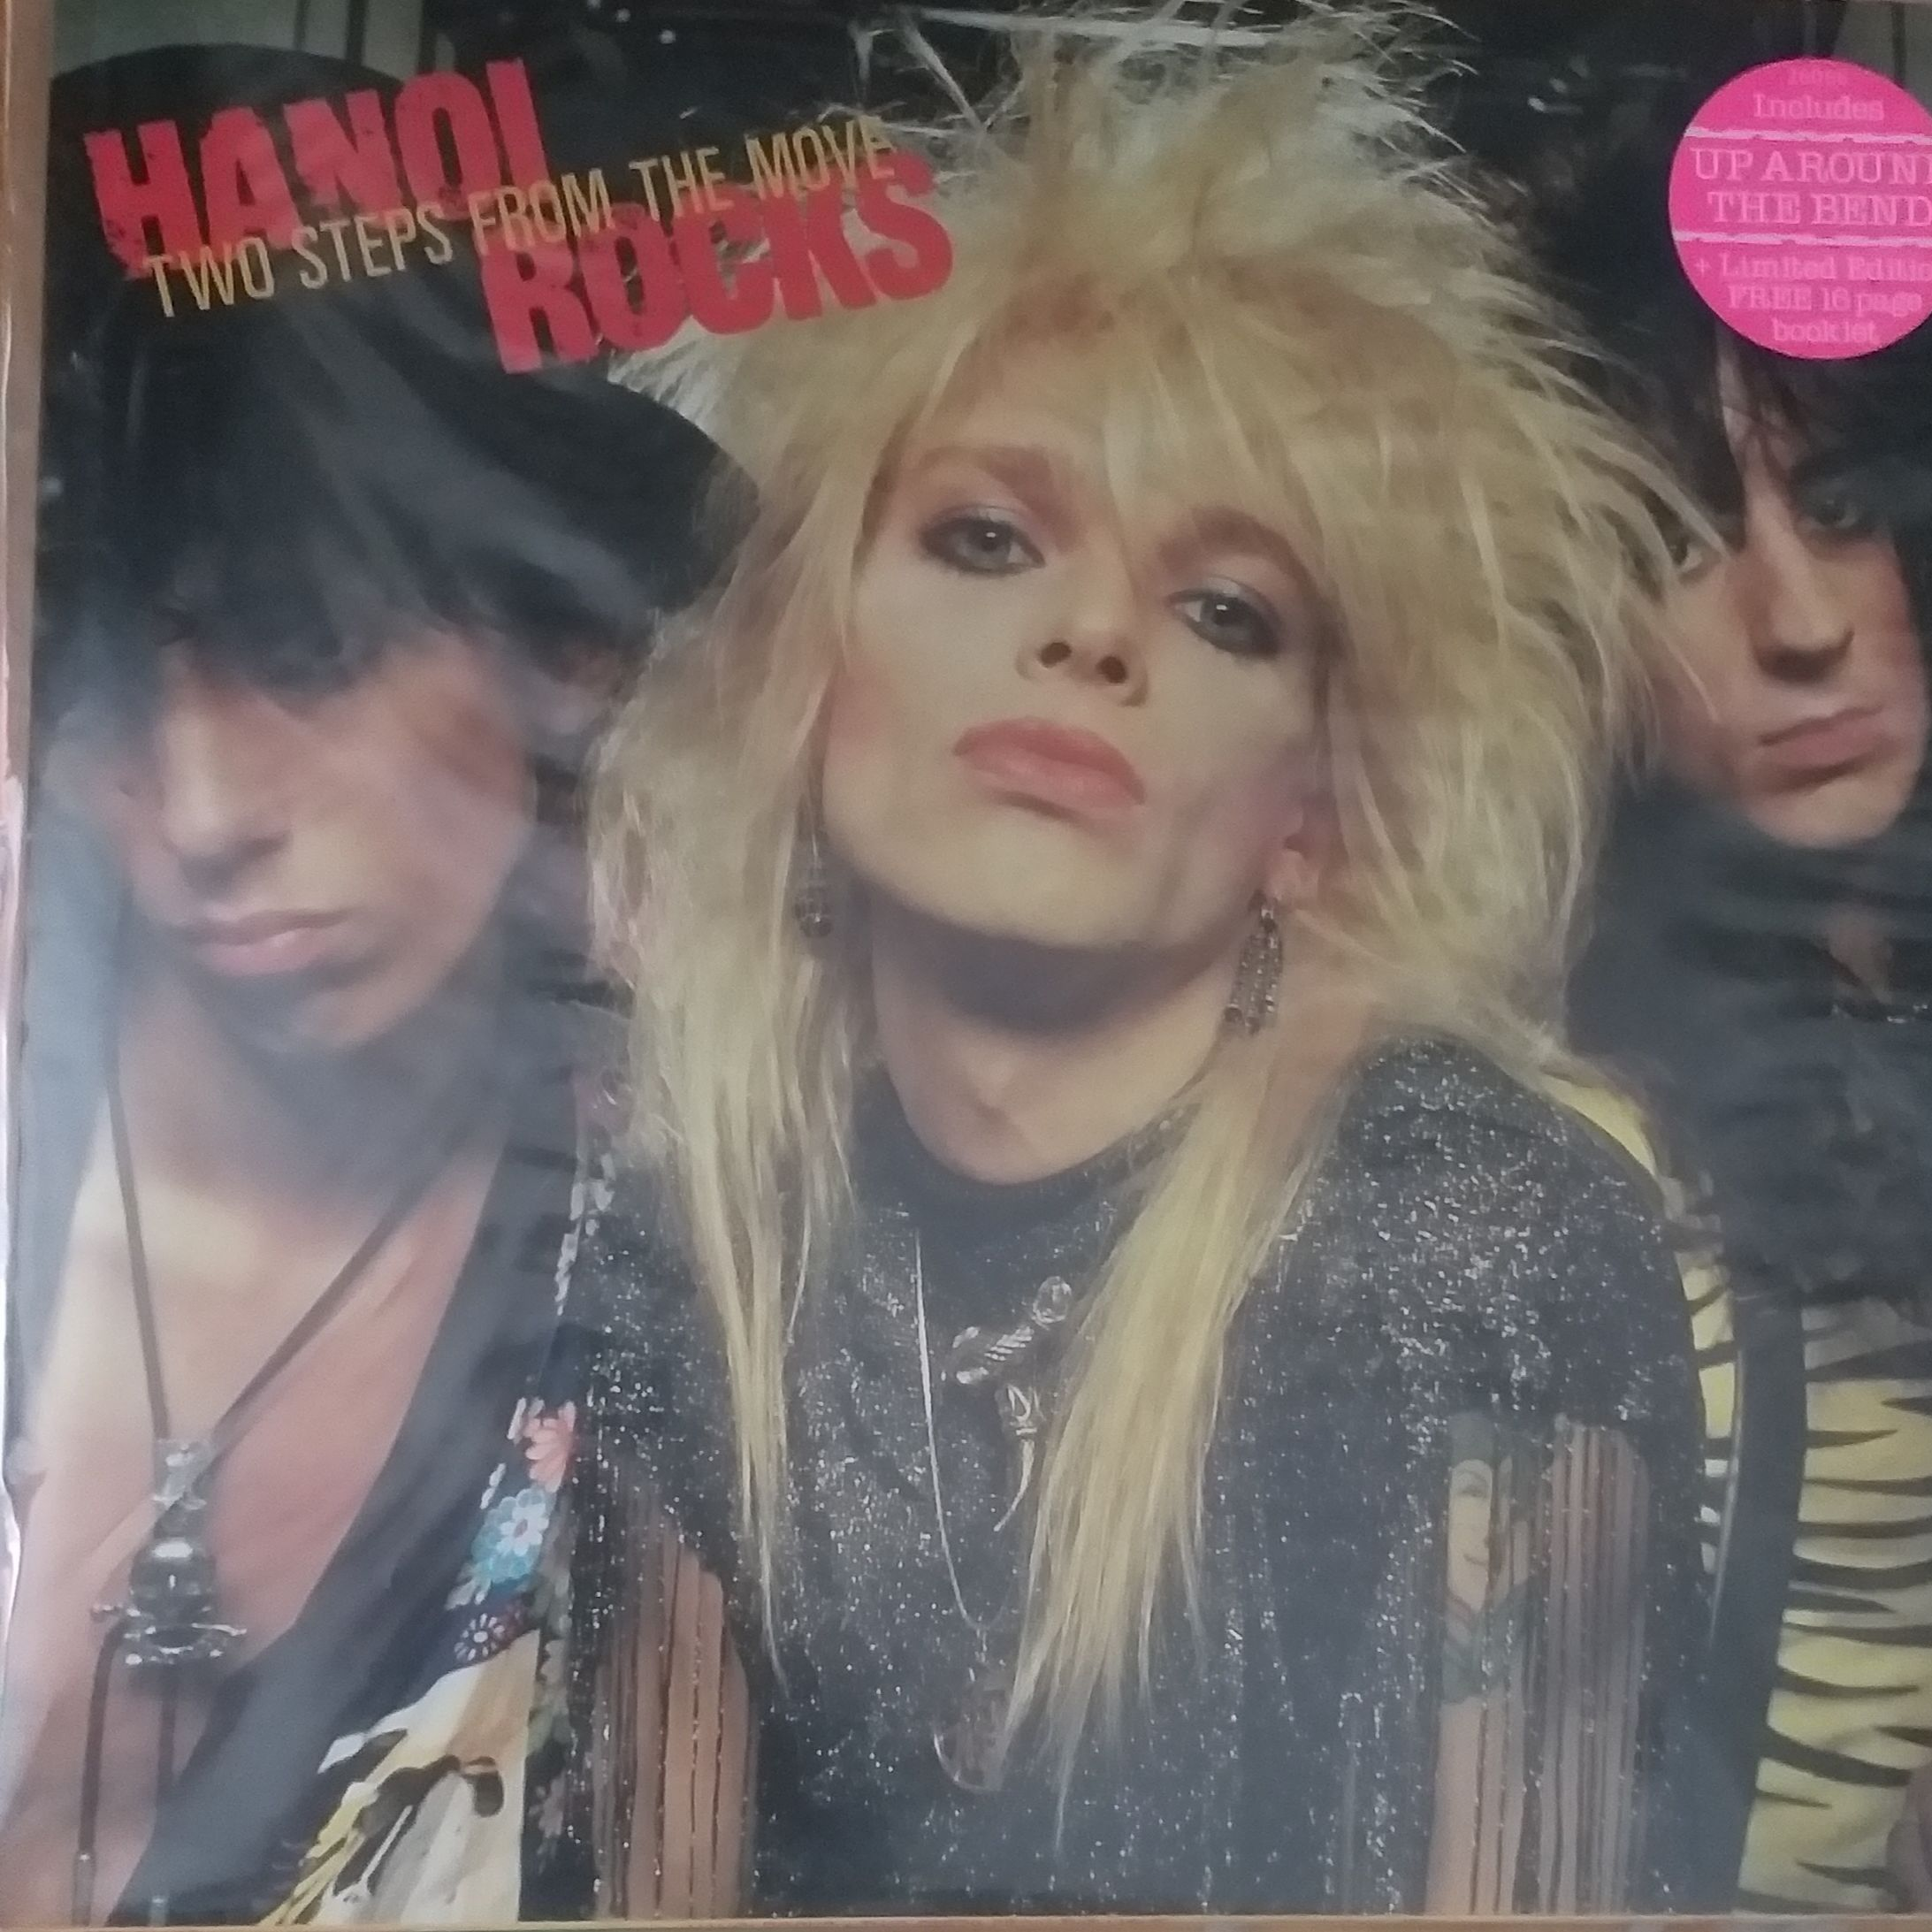 Hanoi rocks Two steps from the move LP undefined